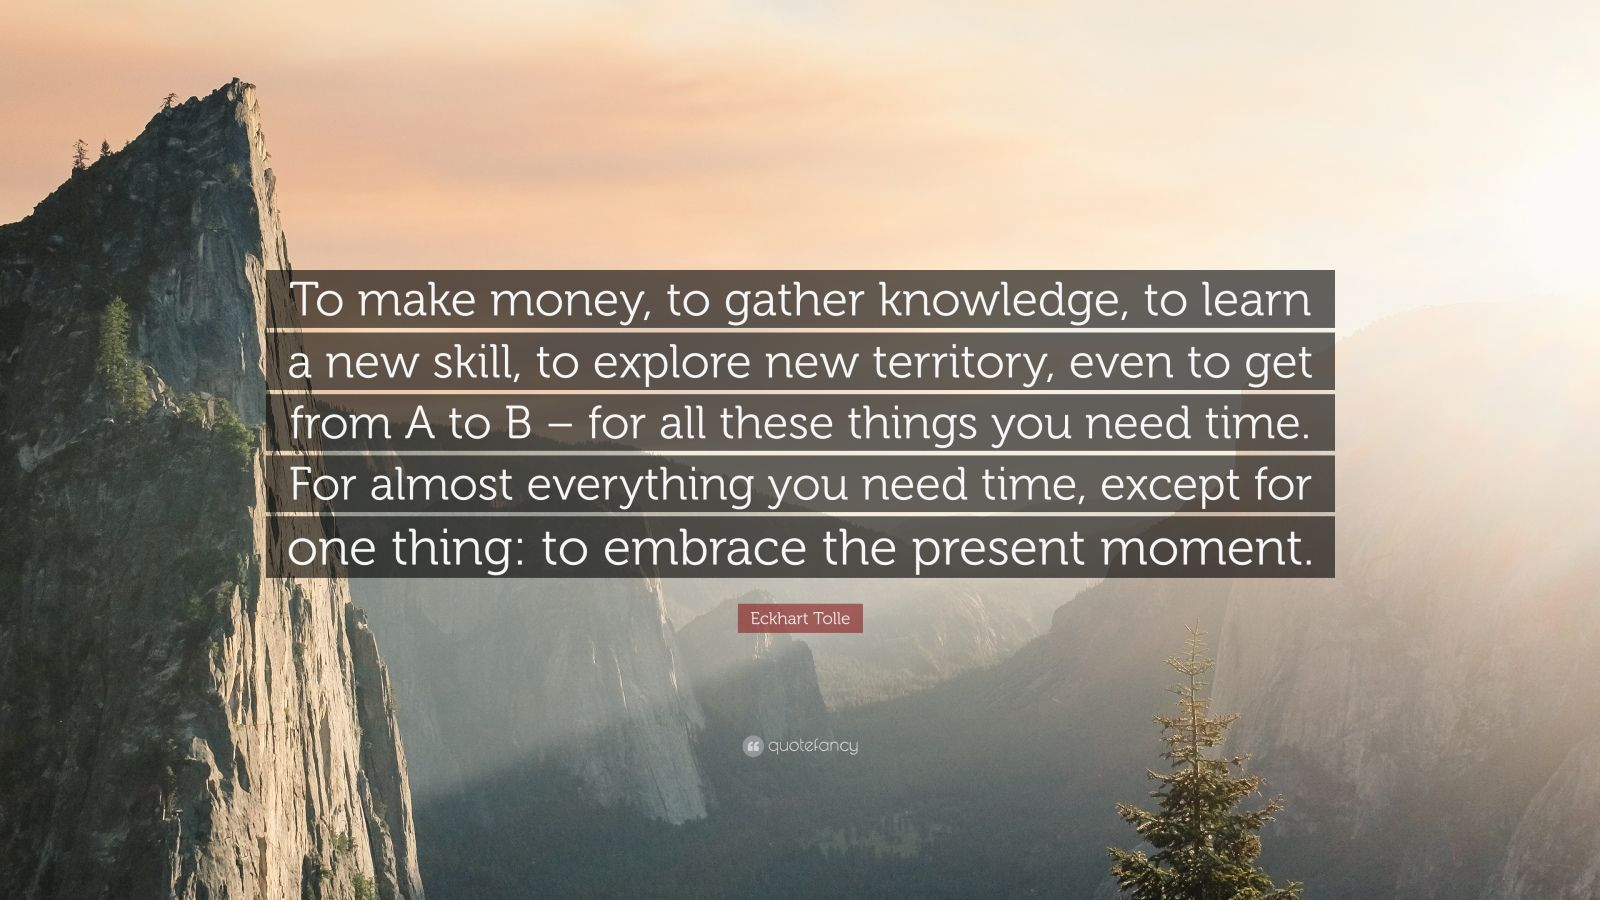 """Eckhart Tolle Quote: """"To make money, to gather knowledge, to learn a new skill, to explore new territory, even to get from A to B – for all these things you need time. For almost everything you need time, except for one thing: to embrace the present moment."""""""